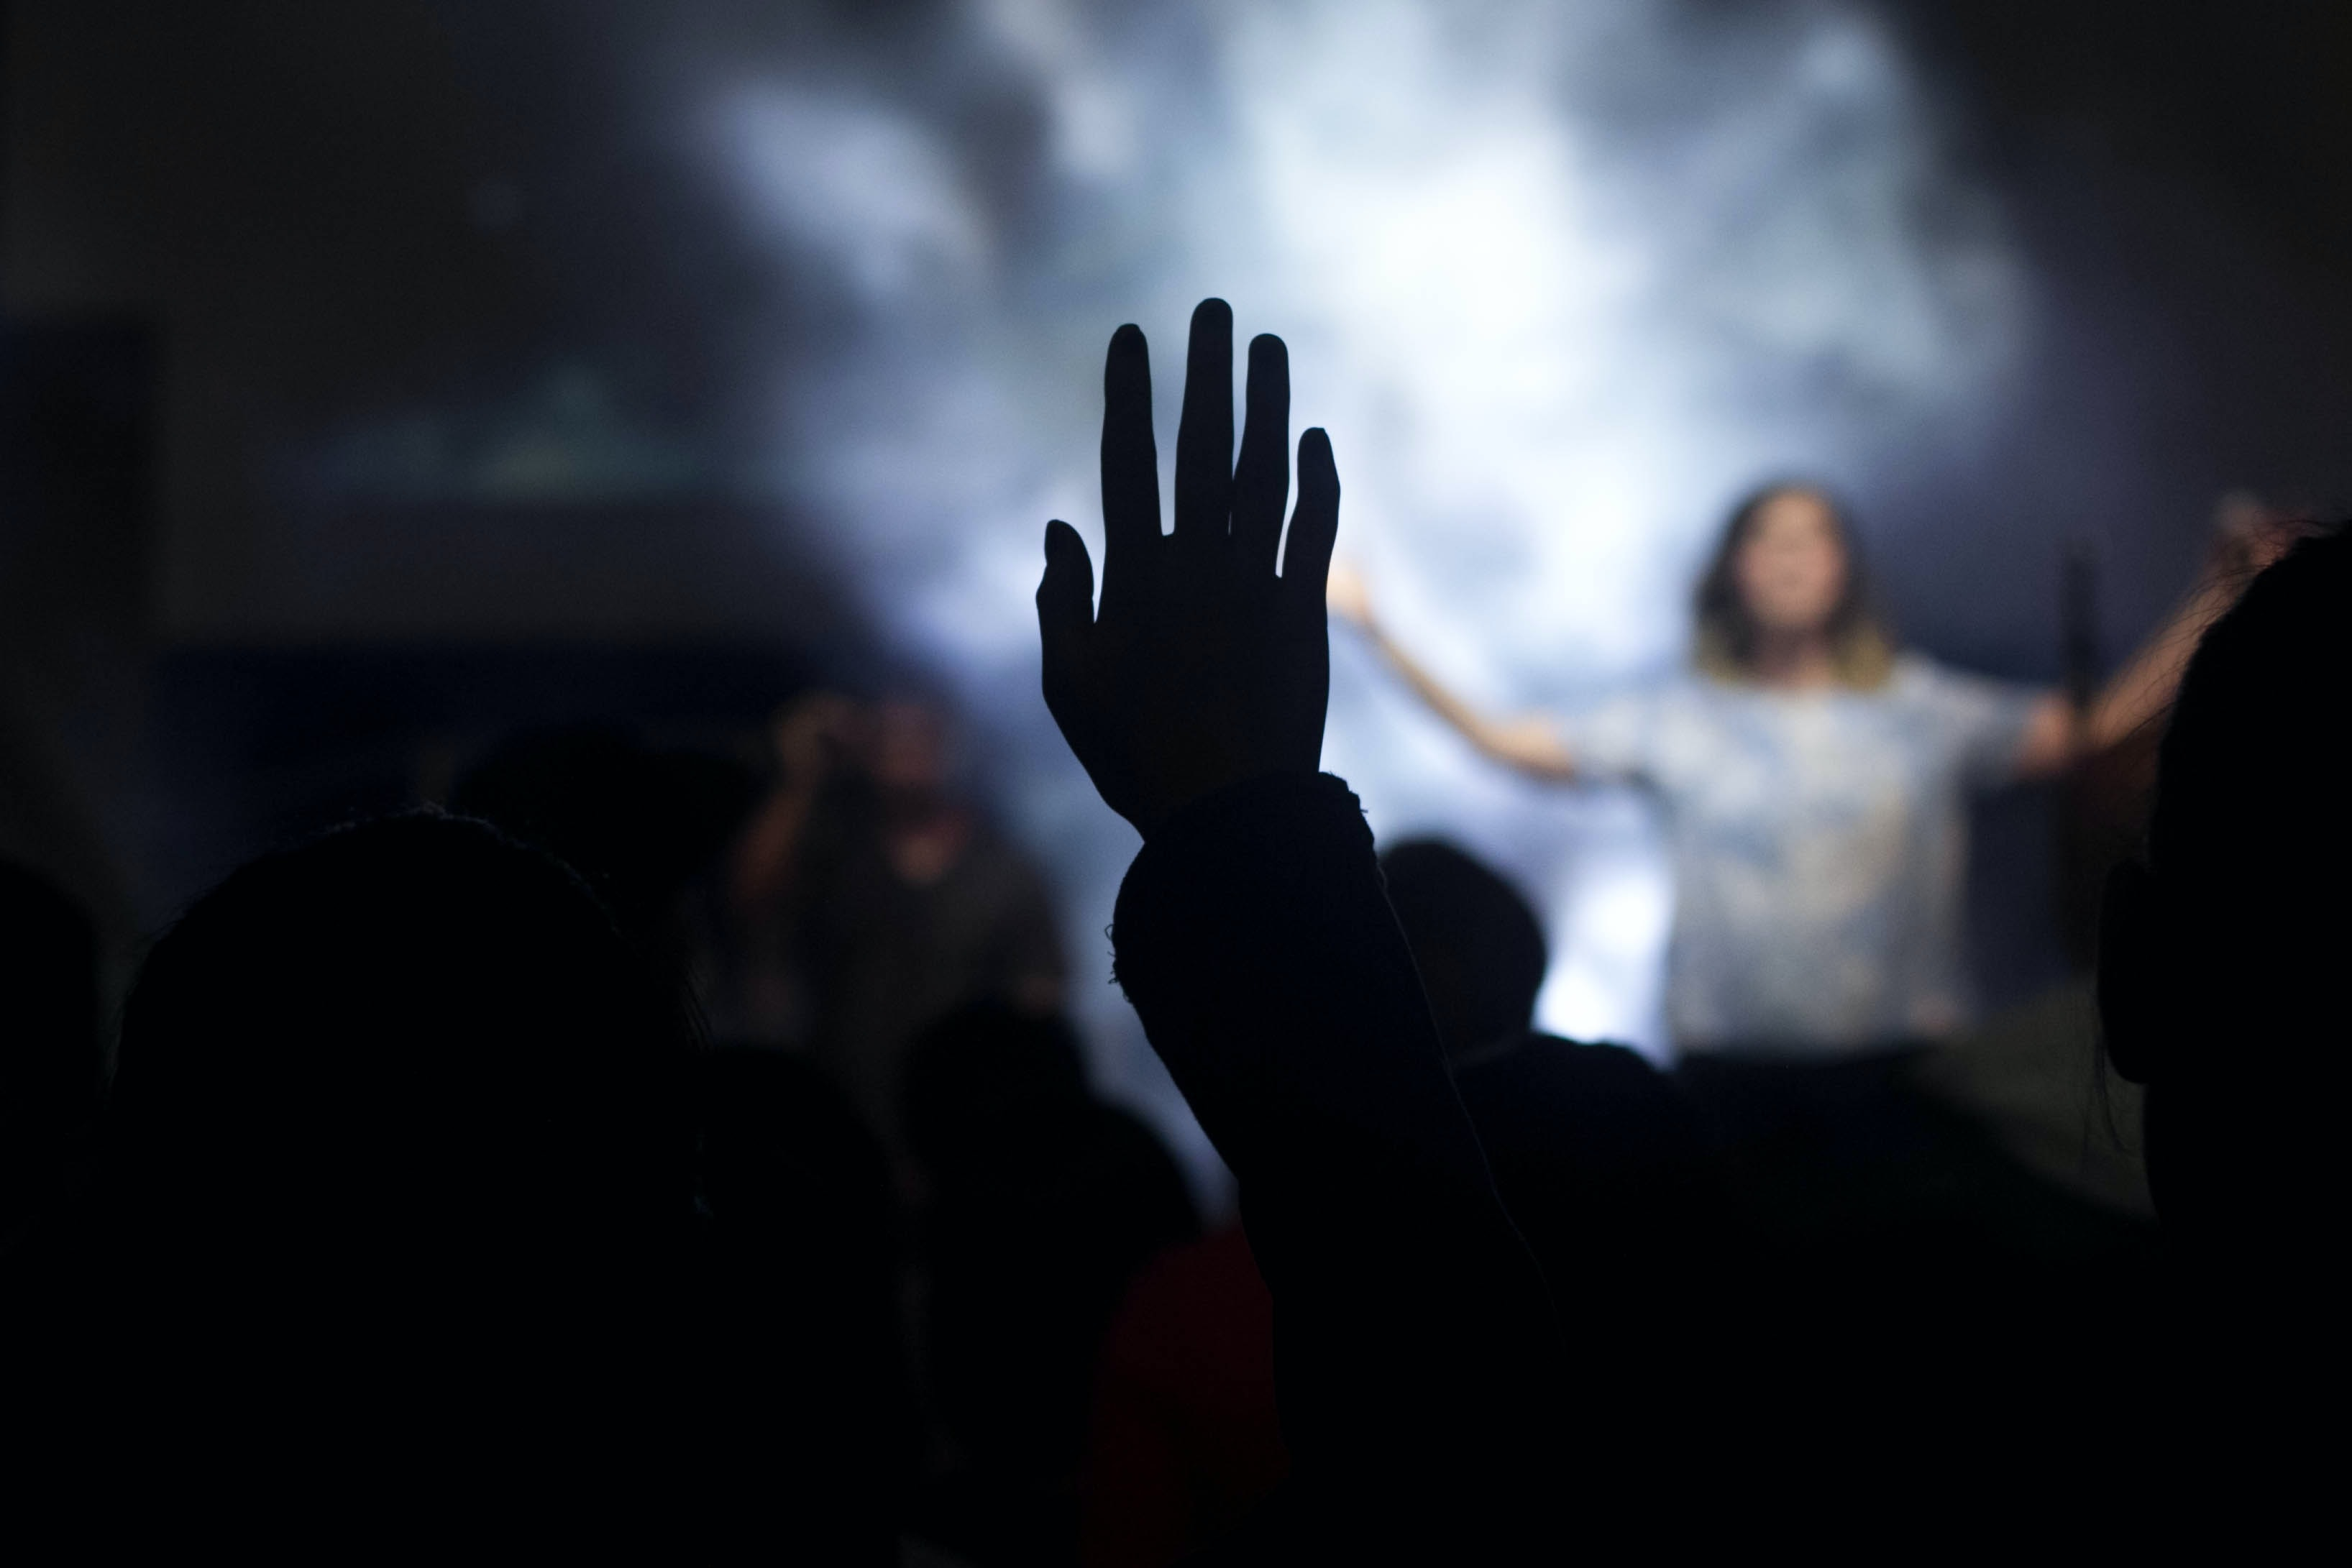 silhouette of person with right hand on air in front of woman on stage